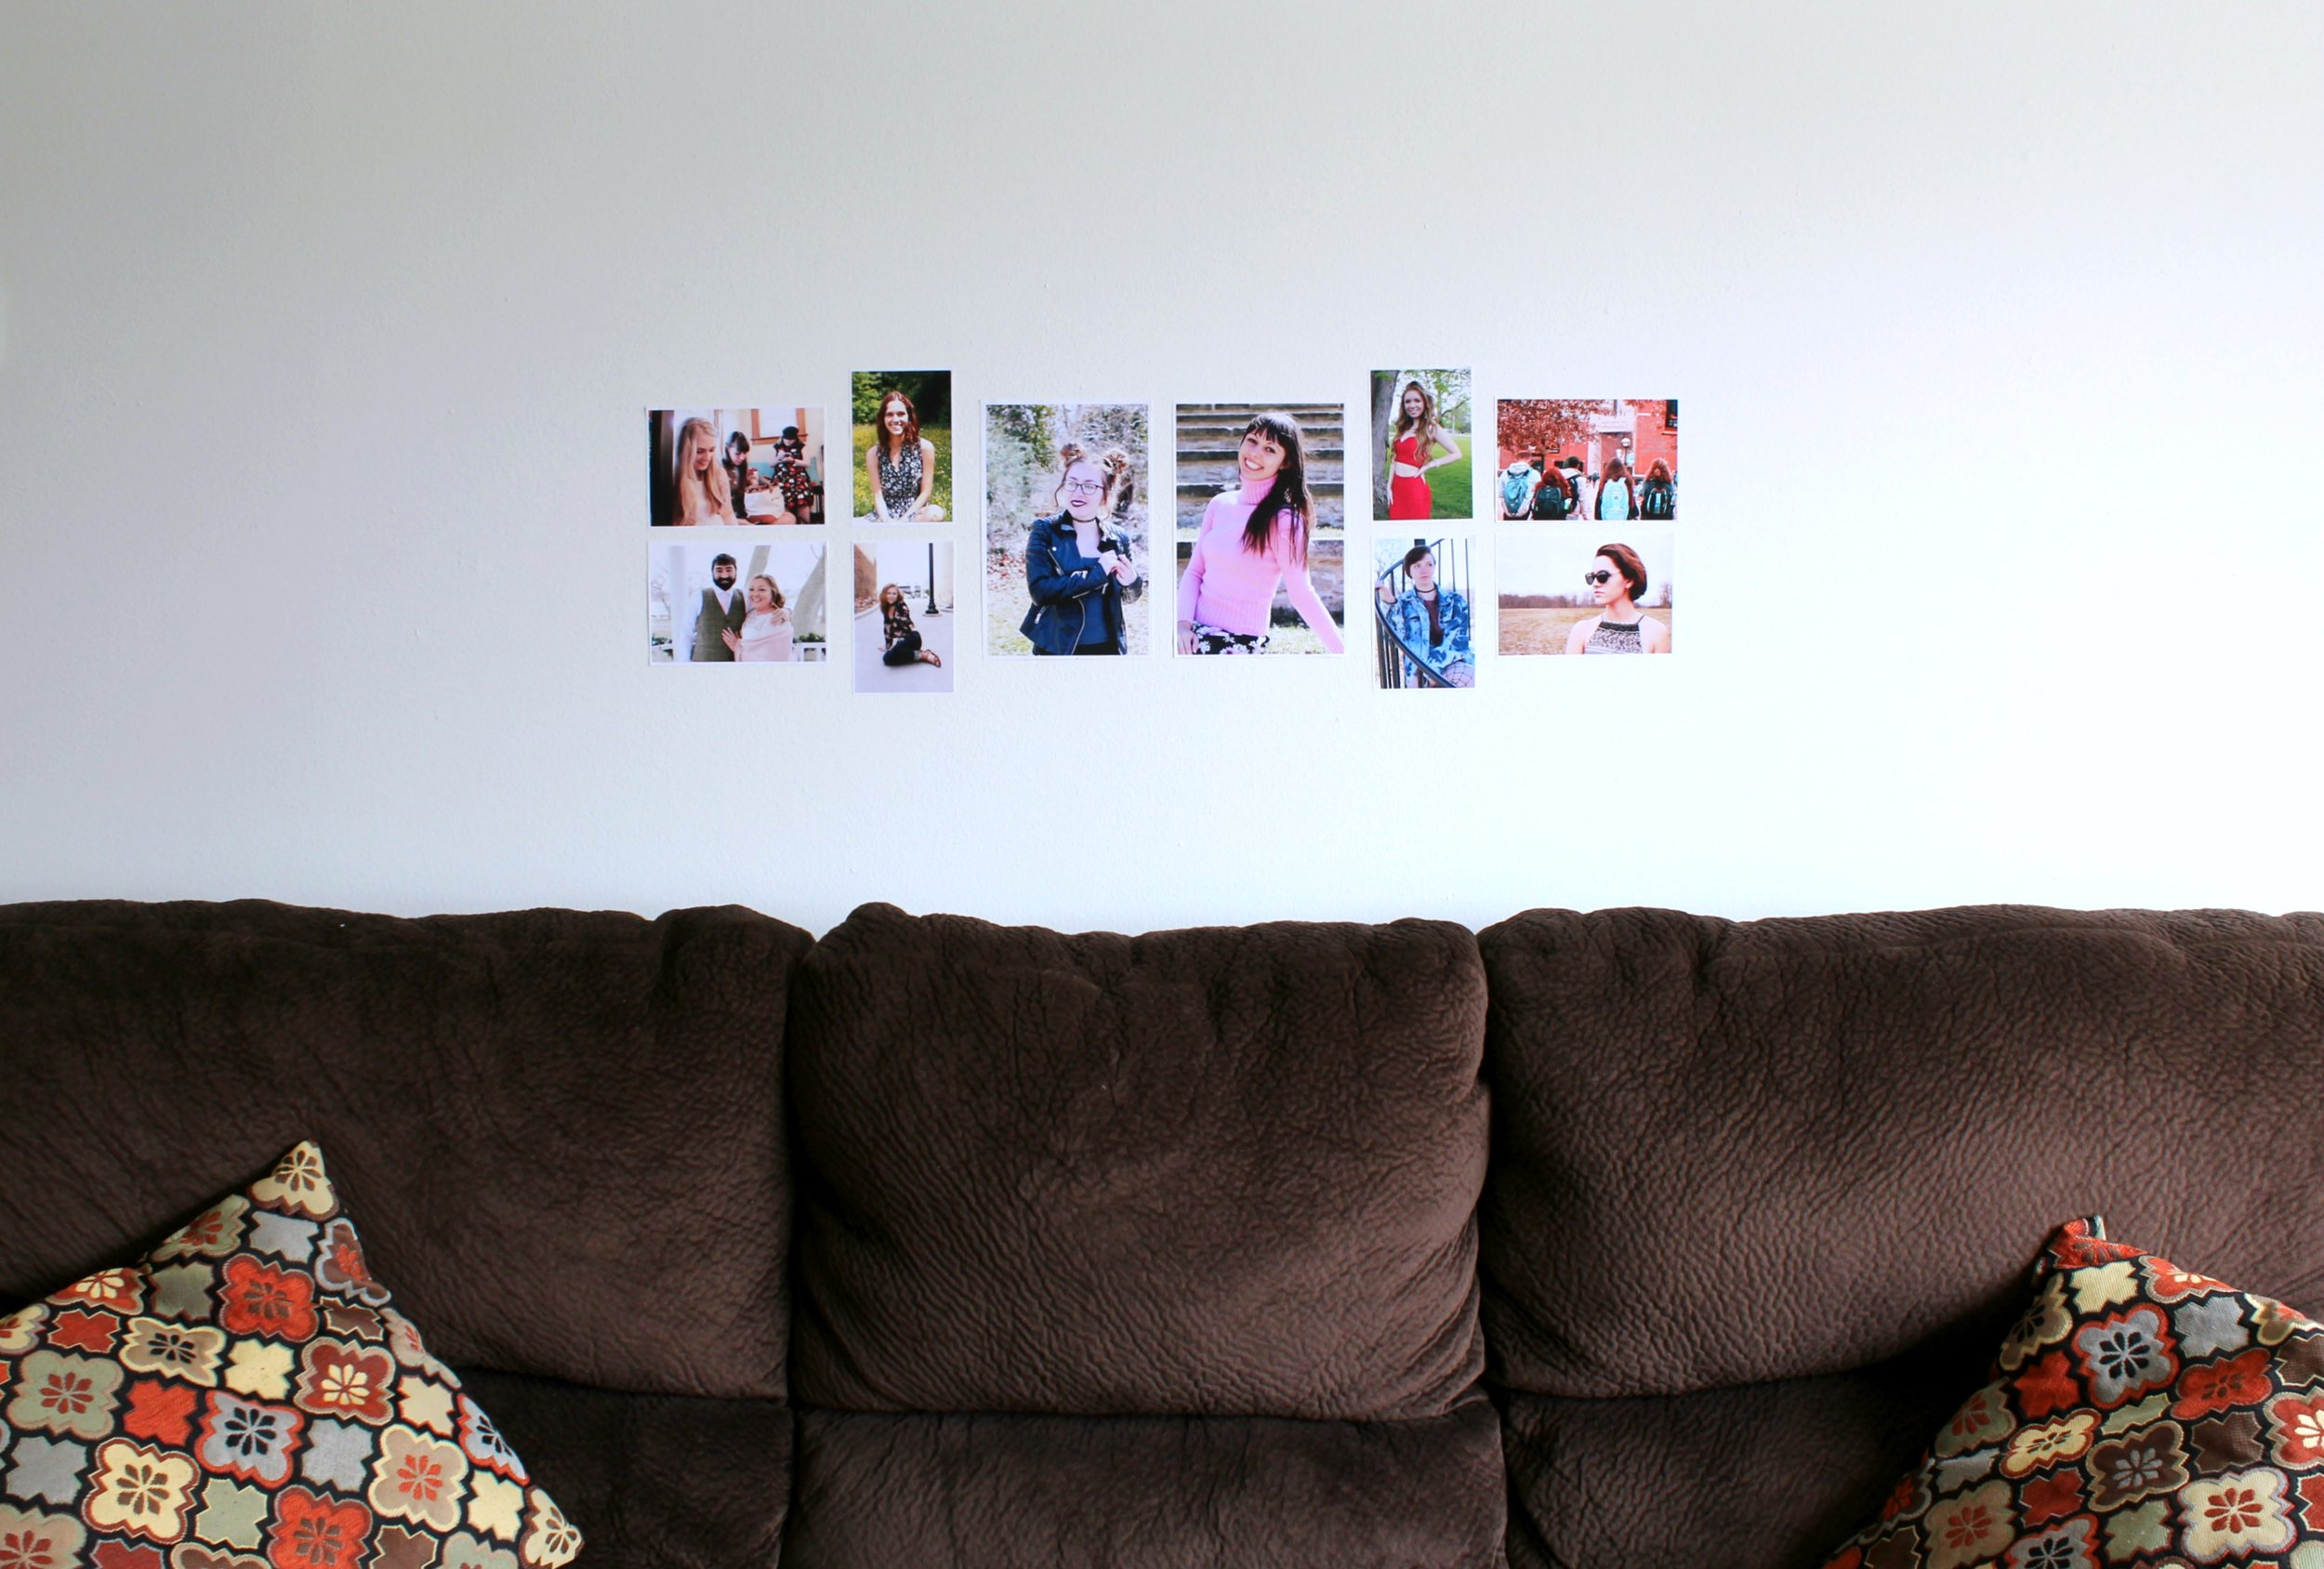 My first arrangement of photos filled more horizontal space than my subsequent arrangements, and I felt like that made it blend too much with the horizontal line of the couch.